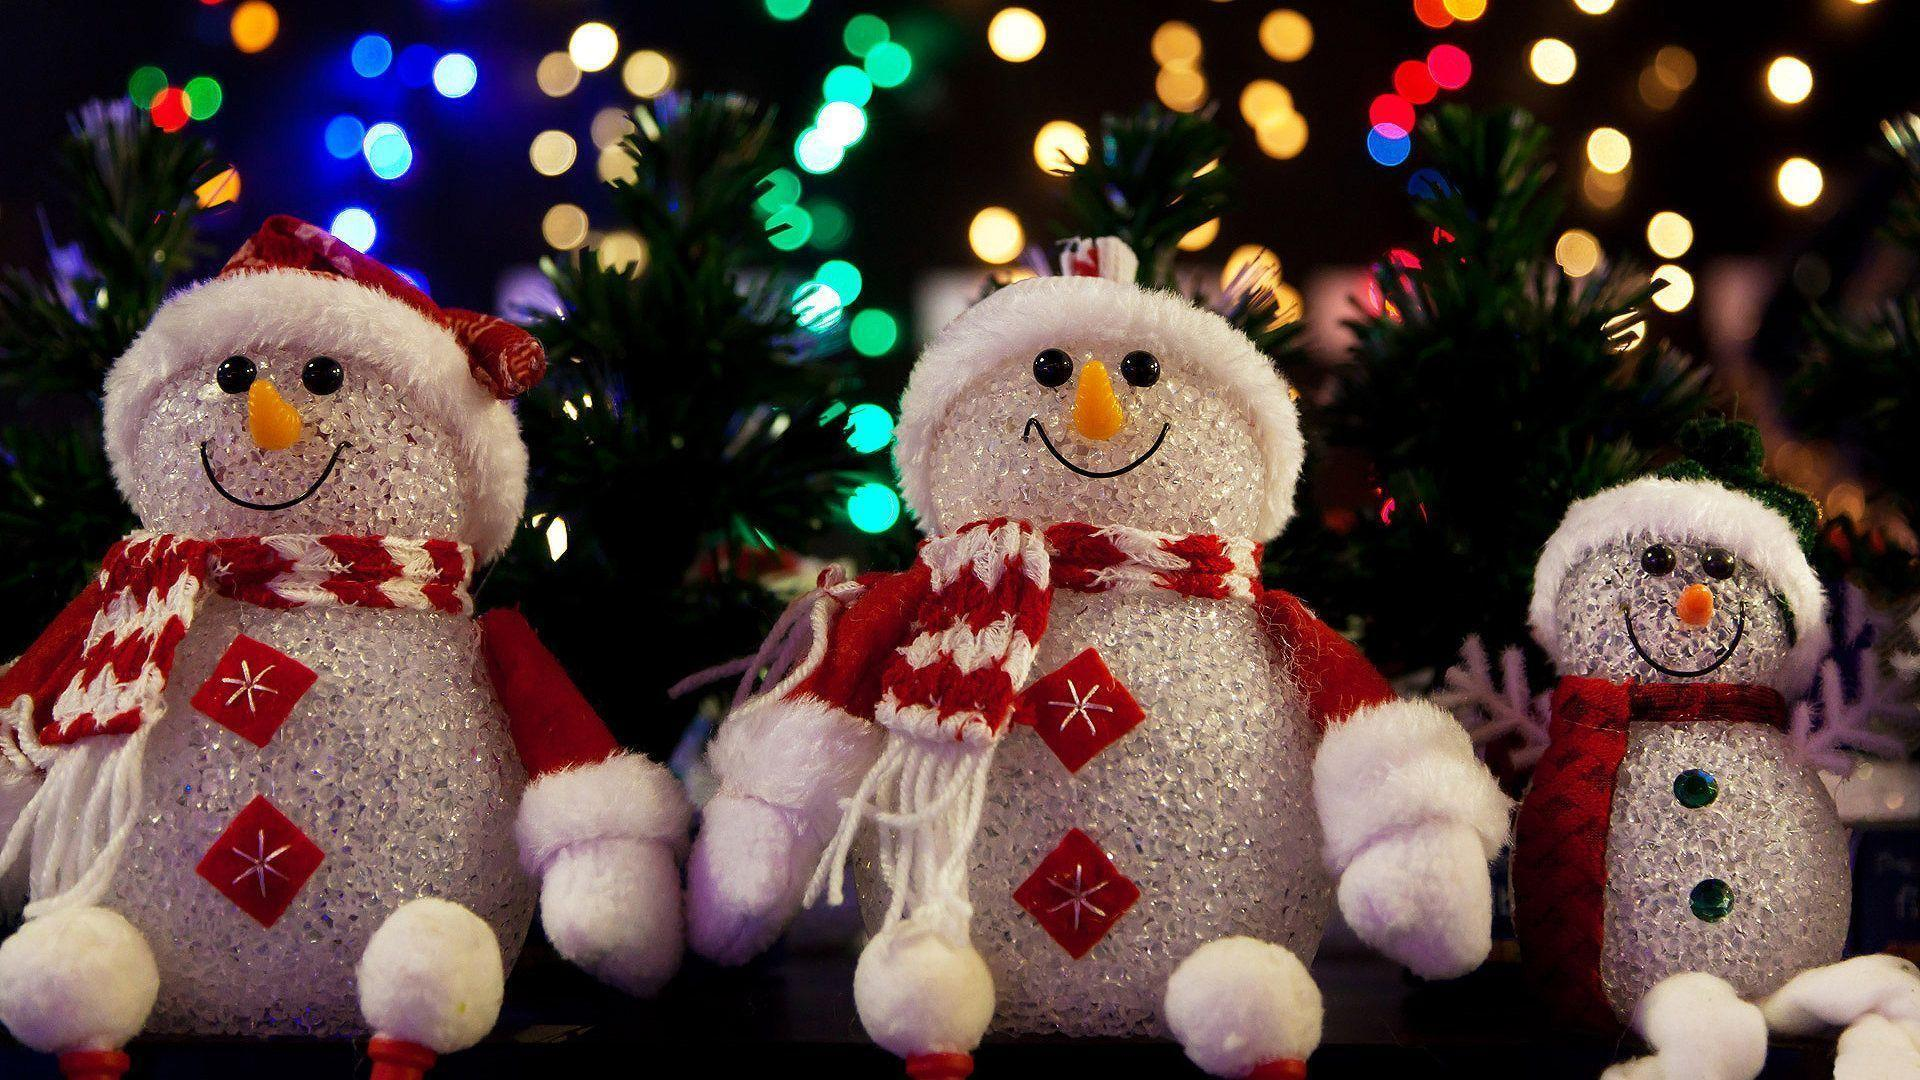 Christmas Wallpapers with Frosty the Snowman